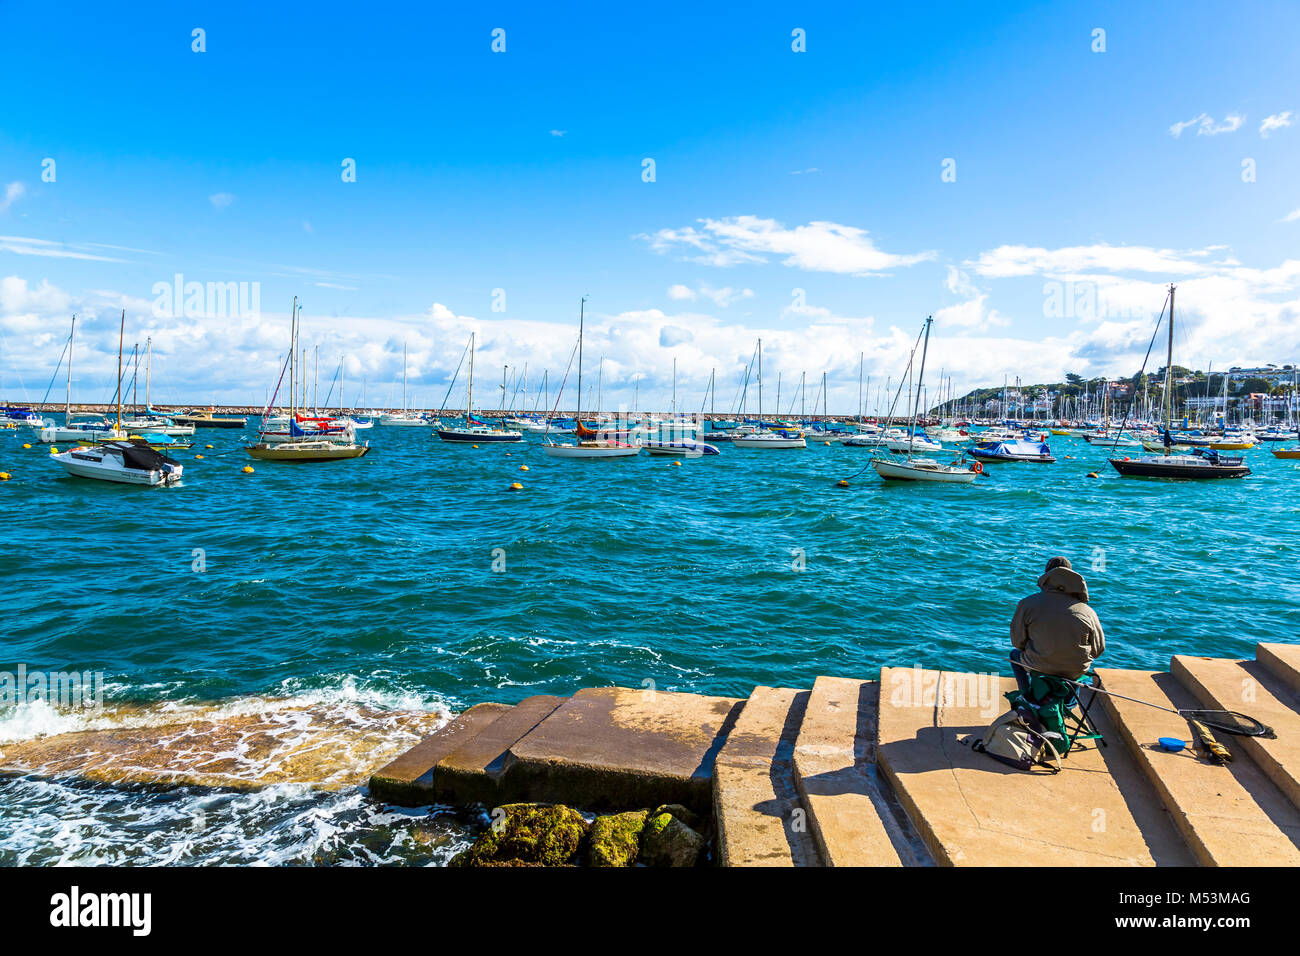 Yachts in harbour at Brixham, South Devon in the UK. Stock Photo